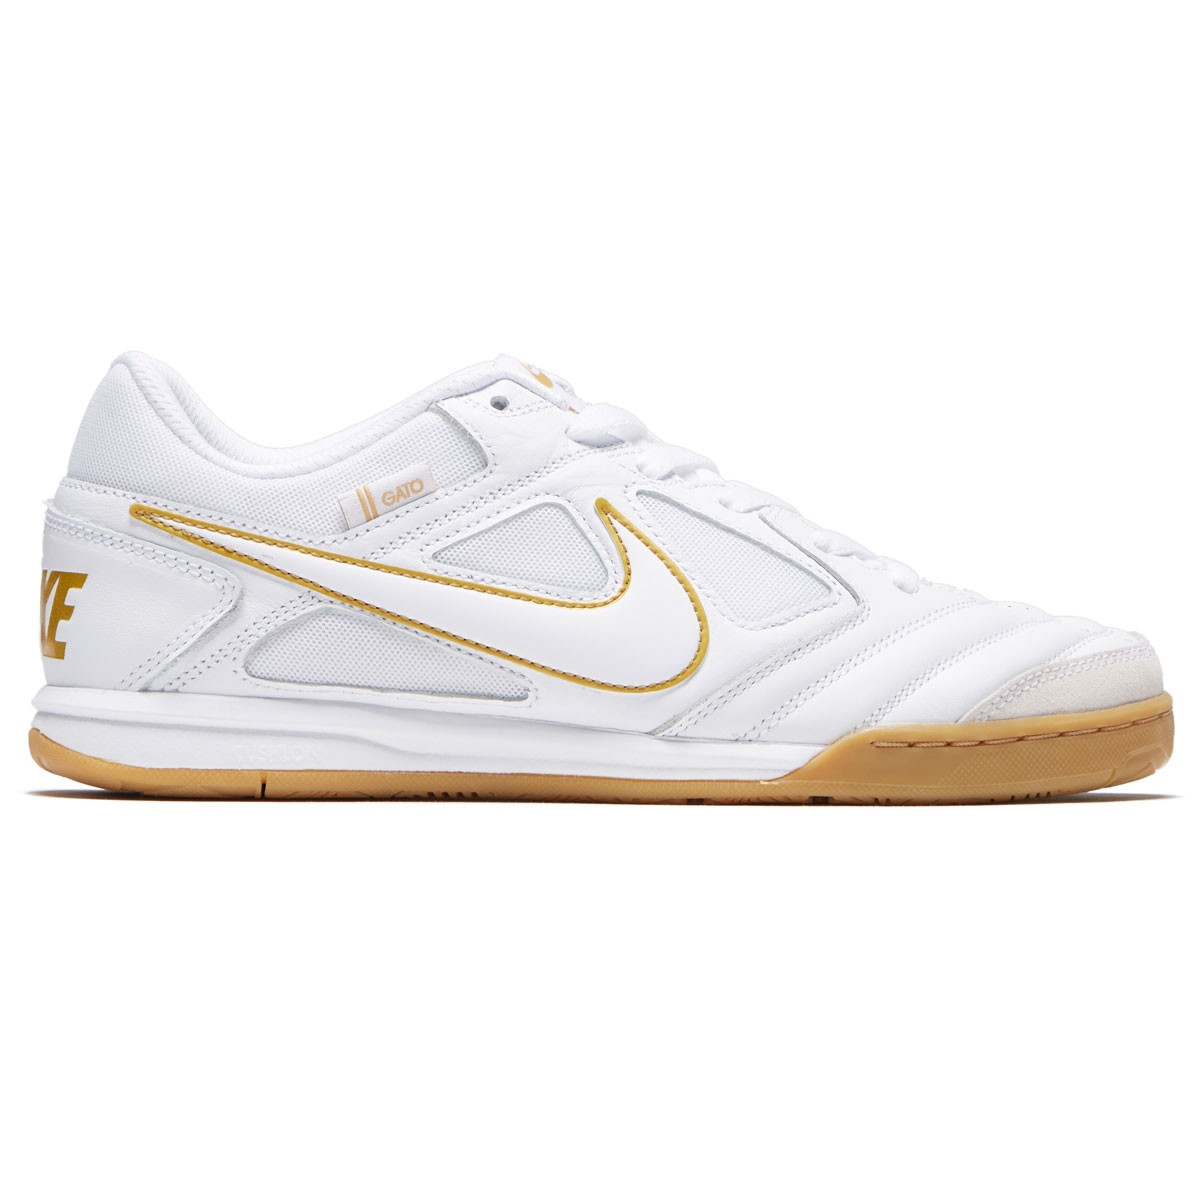 brand new 57741 d9e80 Nike SB Gato Shoes - White White Metallic Gold - 10.0